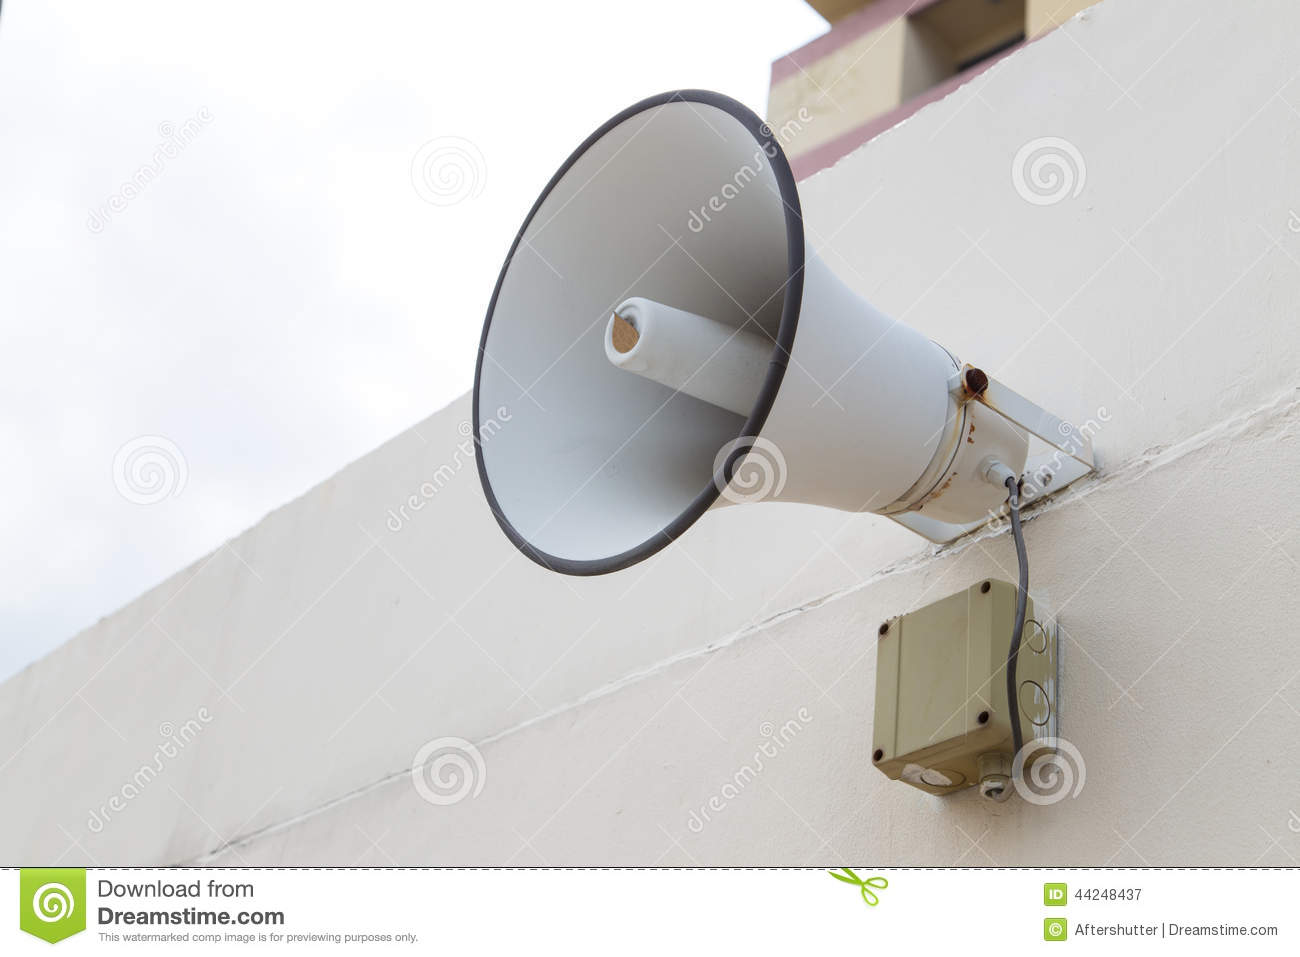 Outdoor Speaker For Announce Message To Public Stock Image